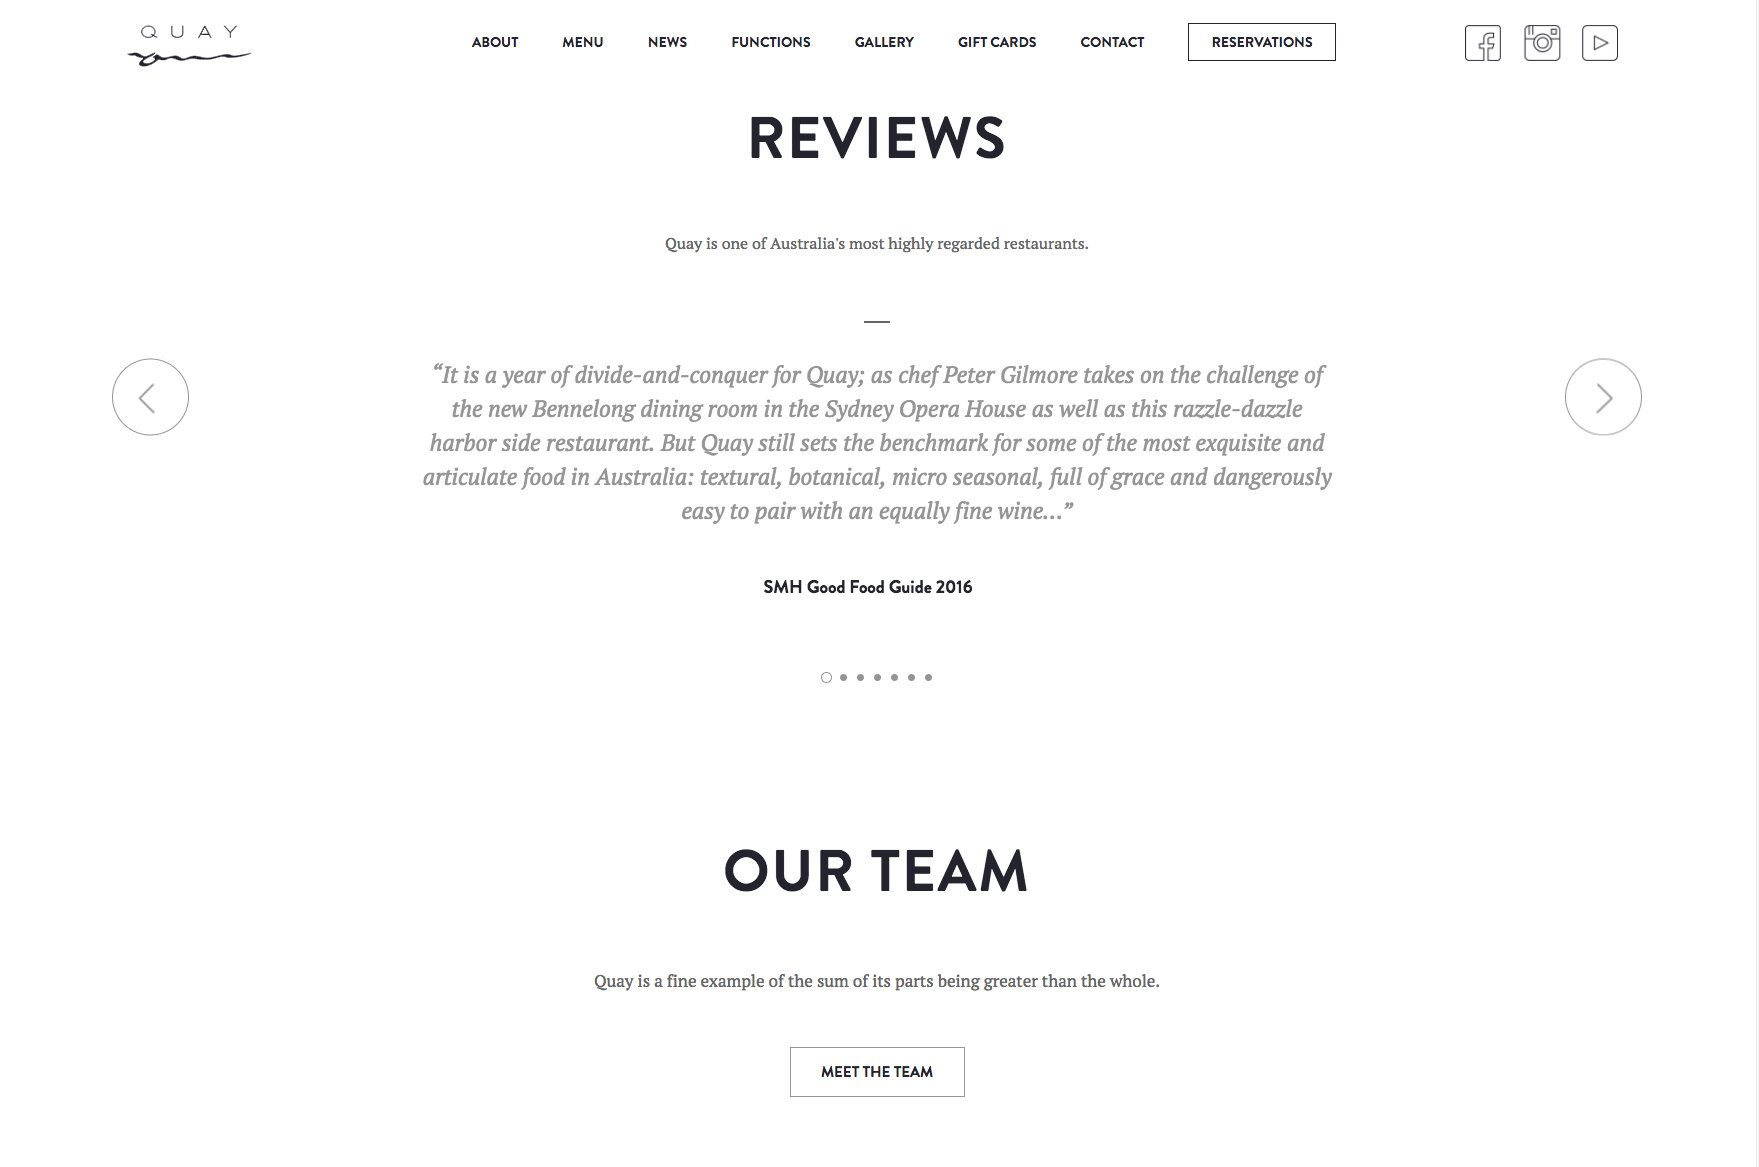 Quay Reviews-reviews are one of the overlooked restaurant marketing ideas